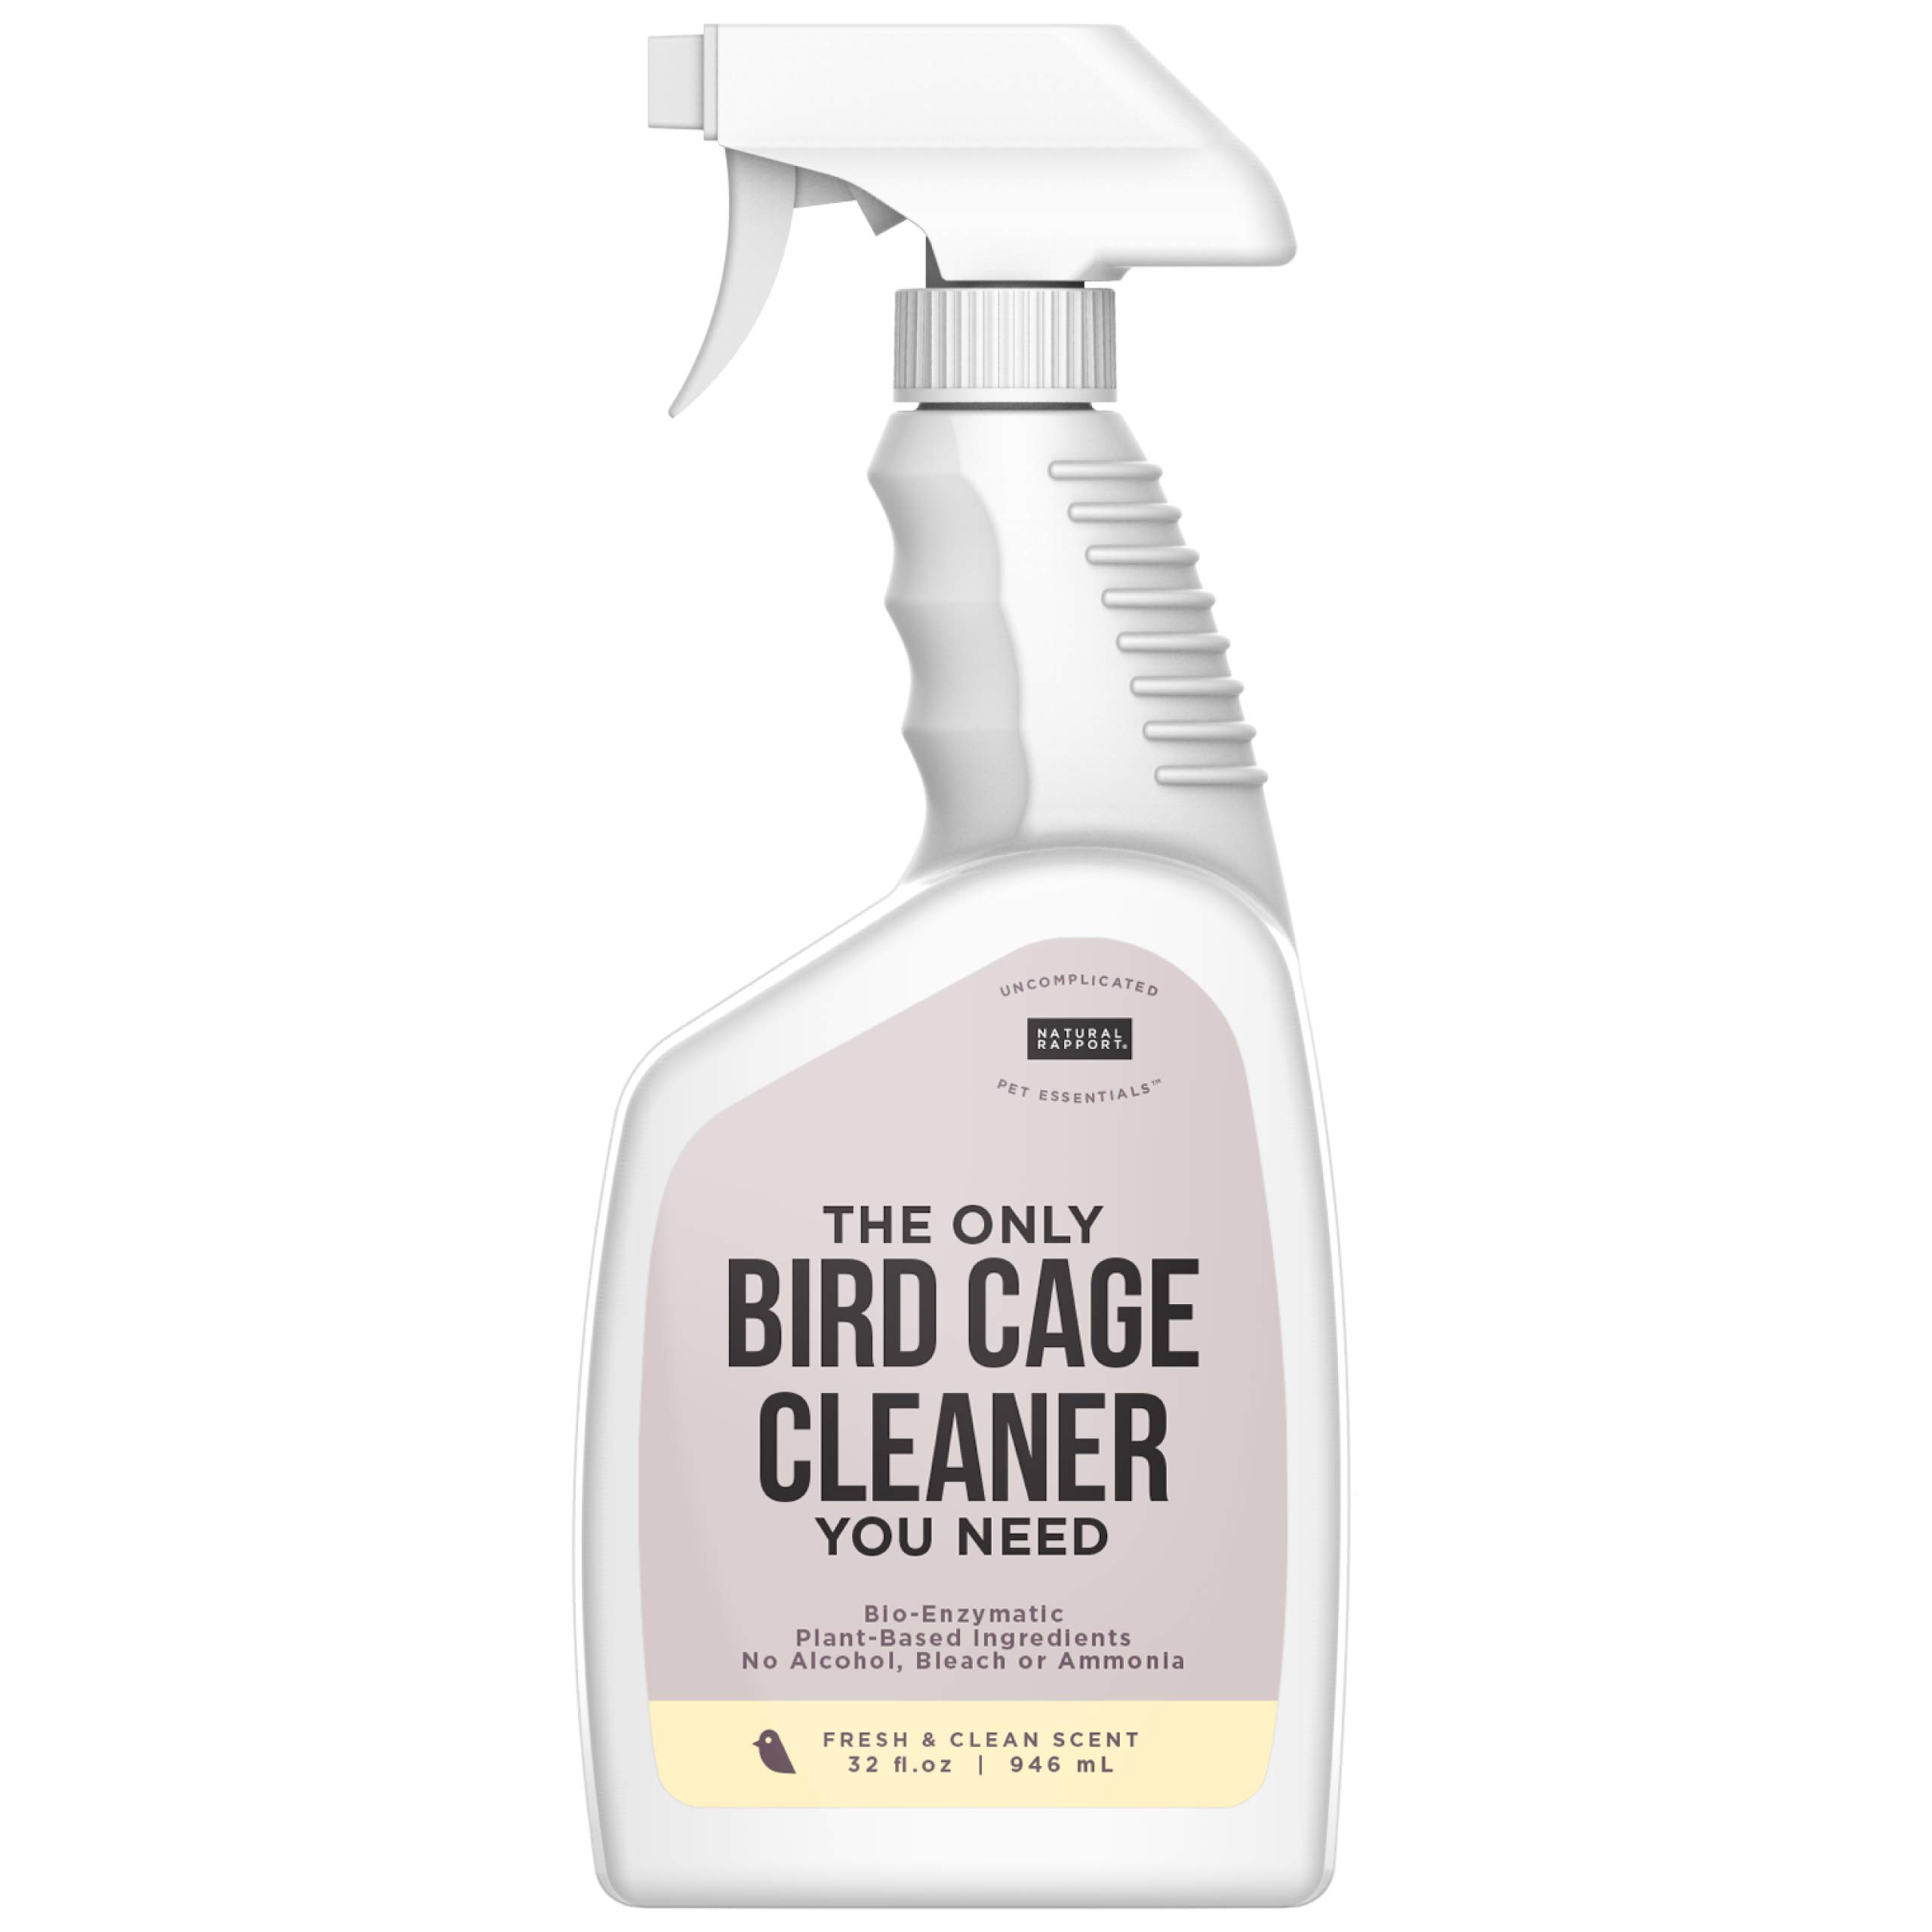 Natural Rapport Bird Cage Cleaner - The Only Bird Cage Cleaner You Need, Bird Poop Spray Remover, Naturally Removes Bird Waste (32 fl oz.) by Natural Rapport